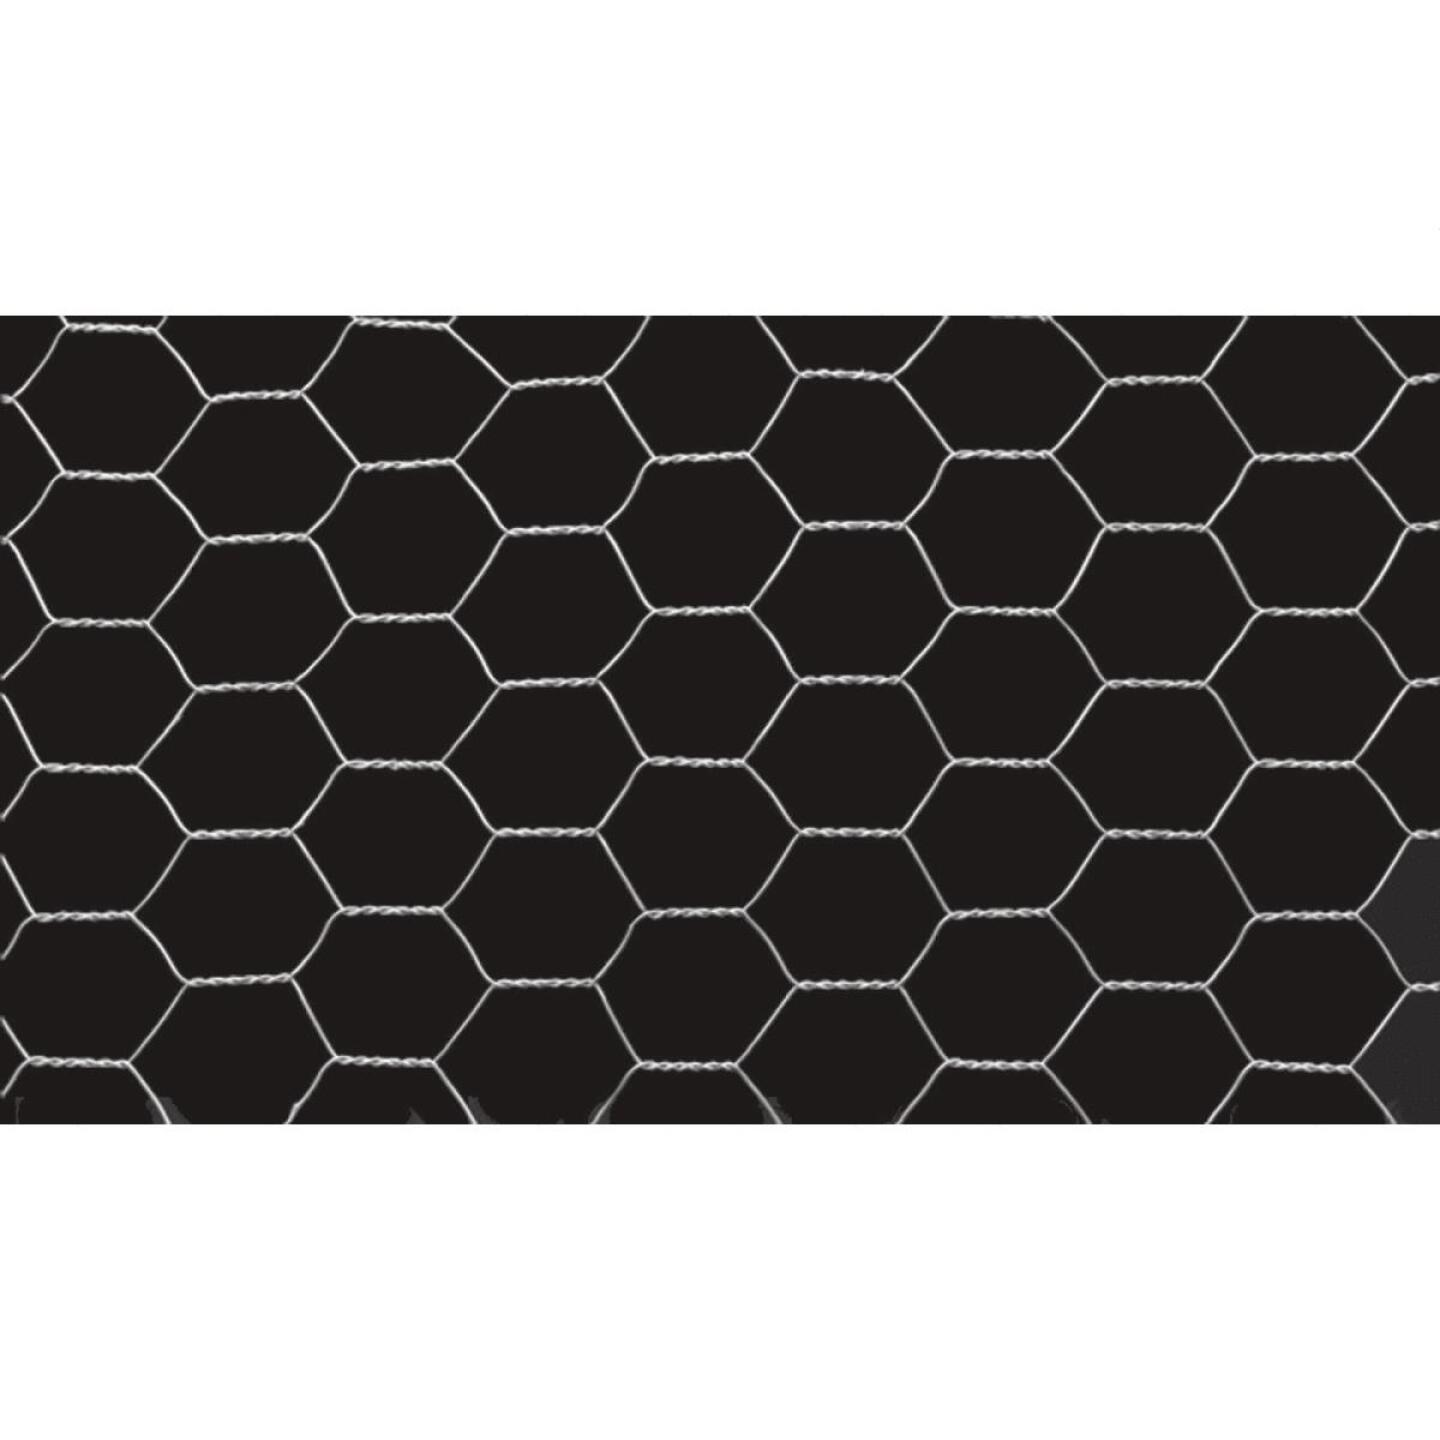 1/2 In. x 36 In. H. x 25 Ft. L. Hexagonal Wire Poultry Netting Image 2